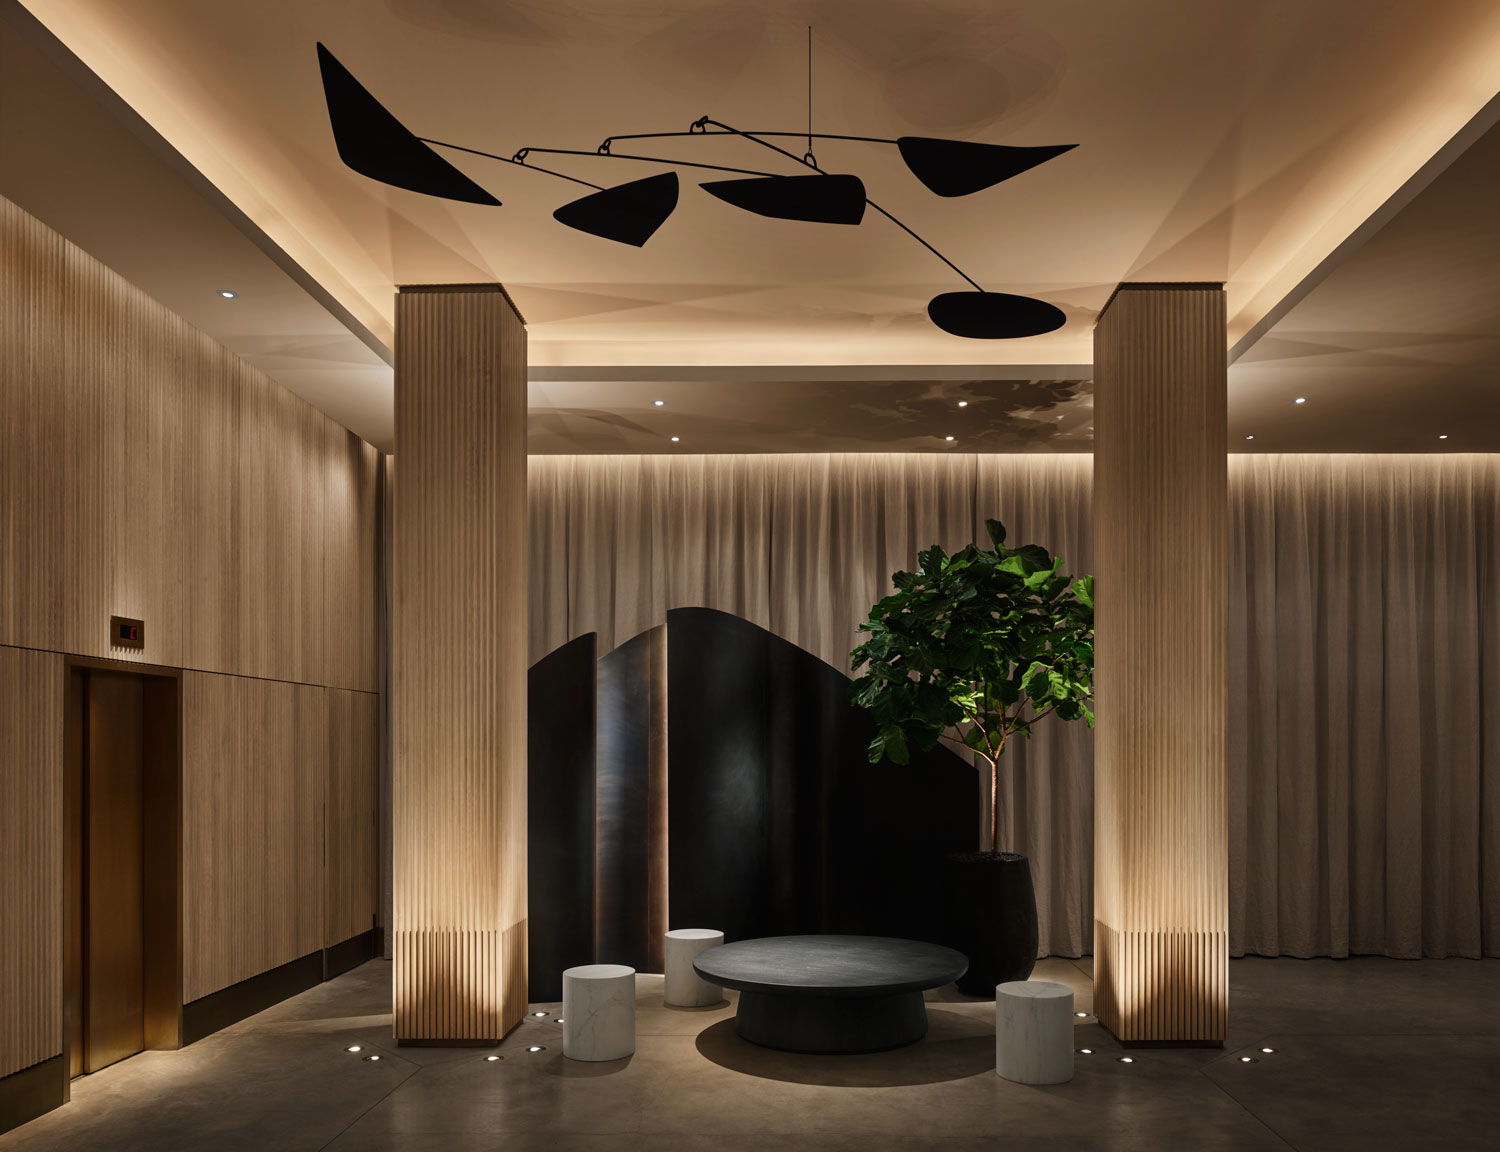 11 howard hotel opens in new york yellowtrace for Interior design agency copenhagen